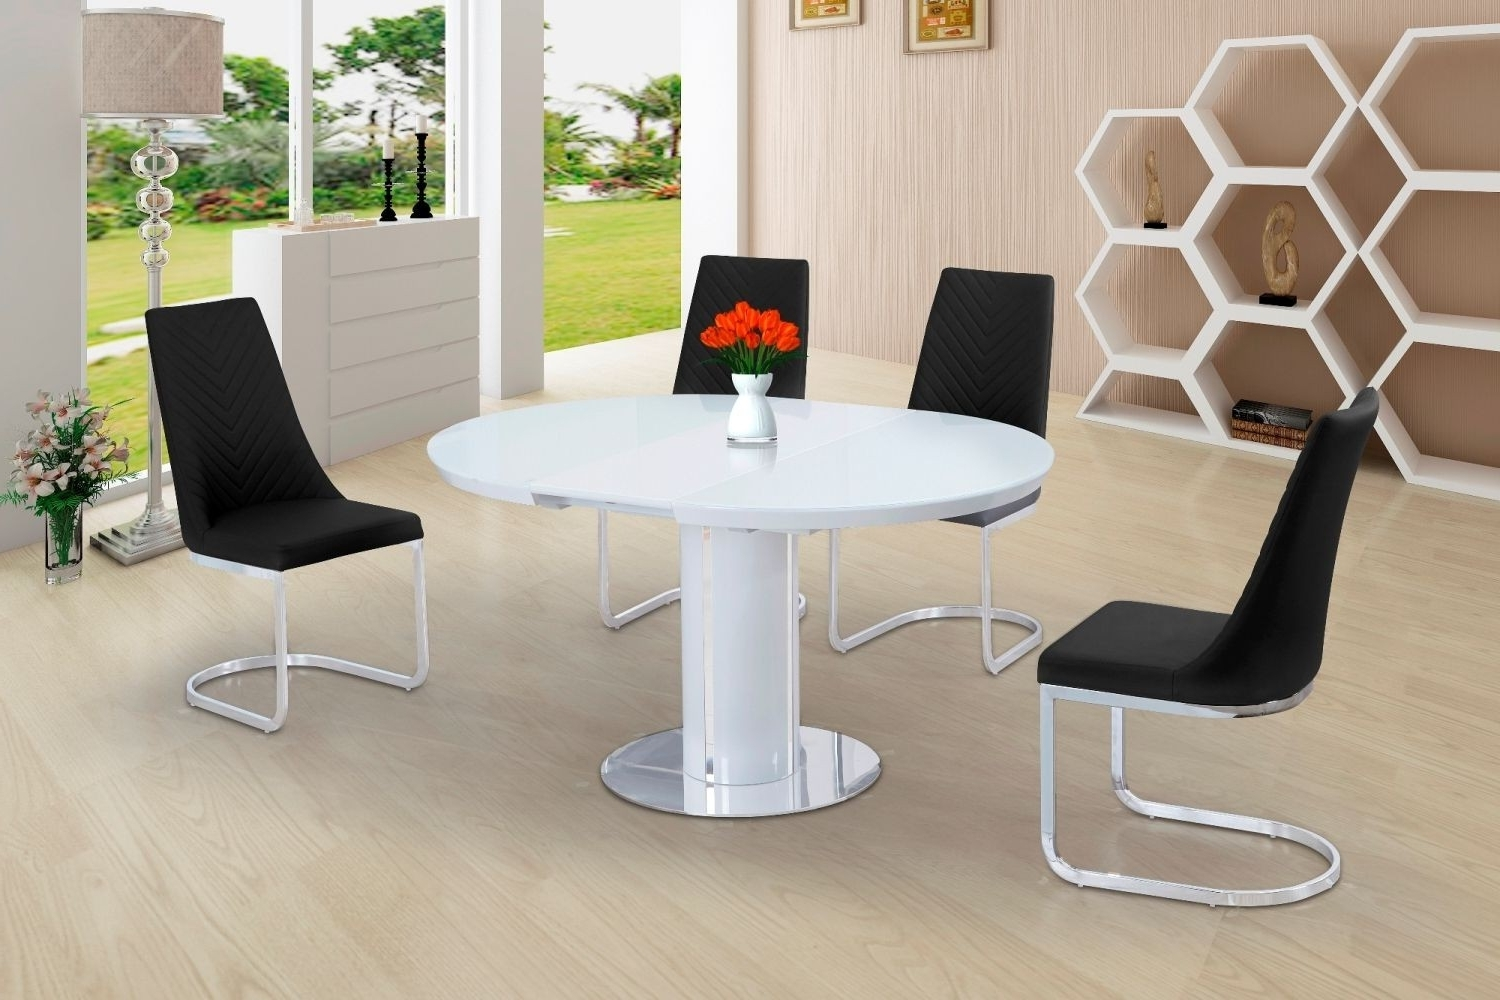 White Round Extendable Dining Tables Pertaining To Famous Buy Space Saving White Gloss Extending Round Dining Table (View 6 of 25)